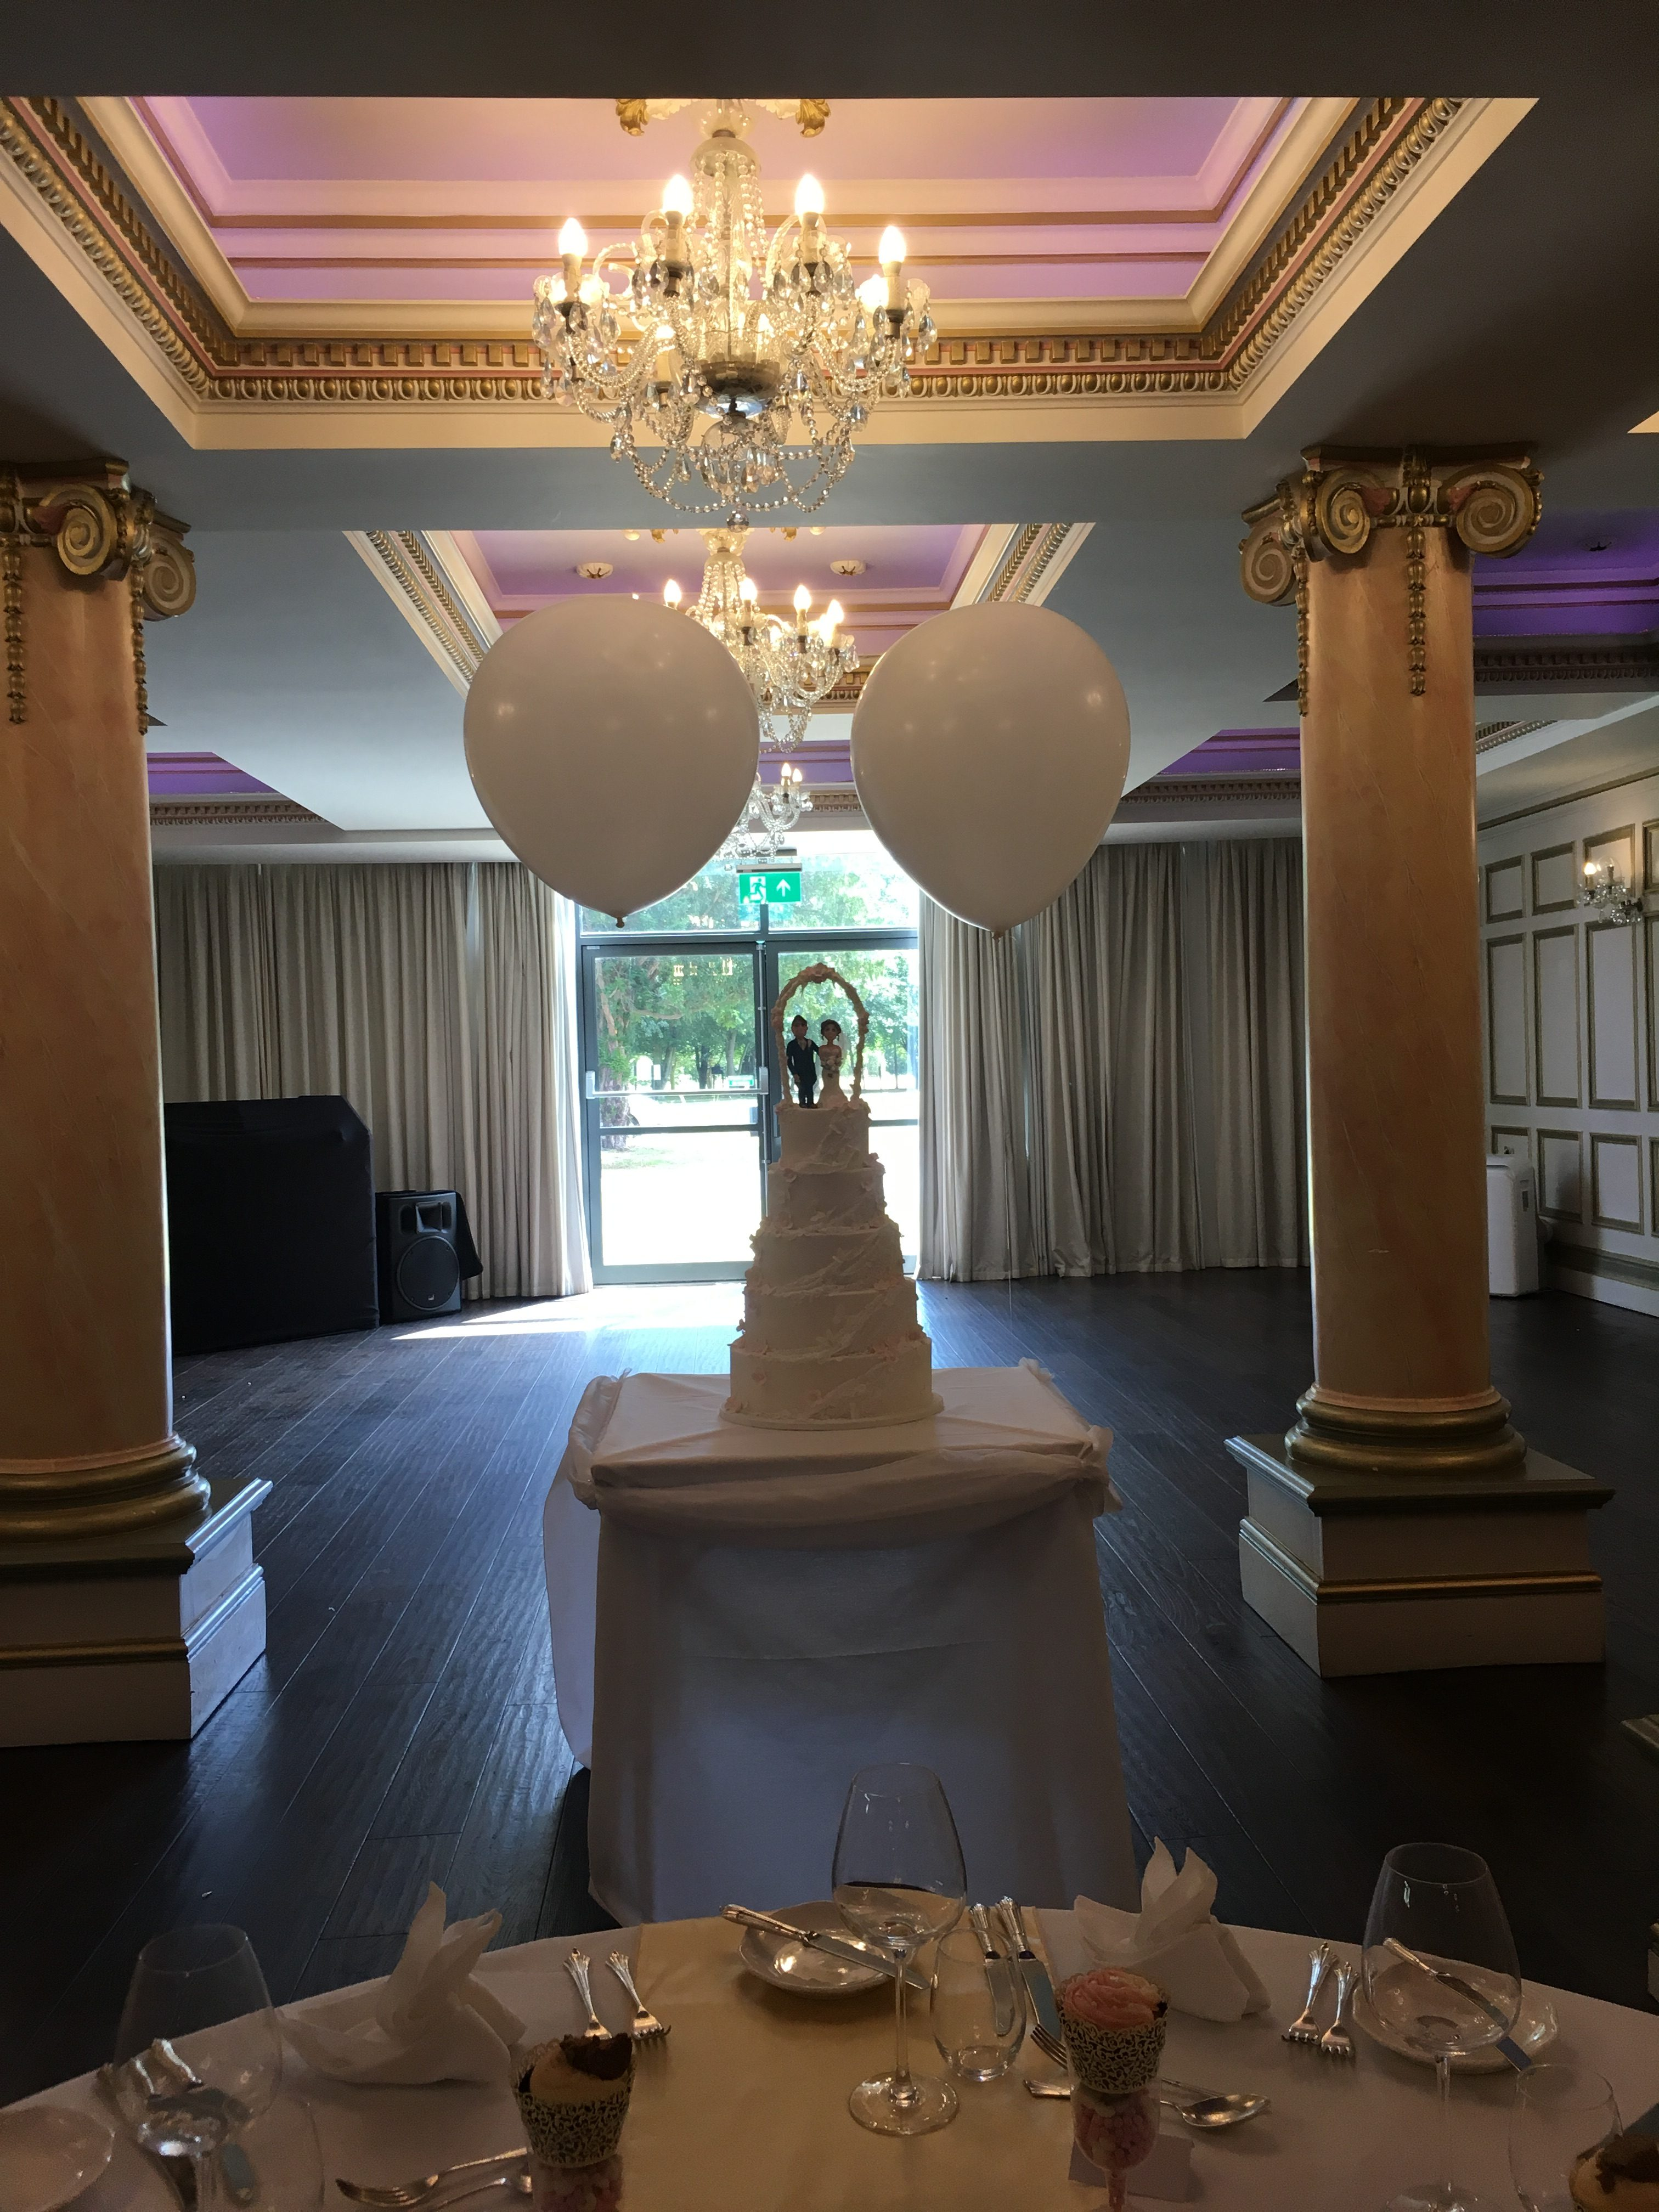 Giant Balloons Sophia's Final Touch - Venue Styling - Weddings